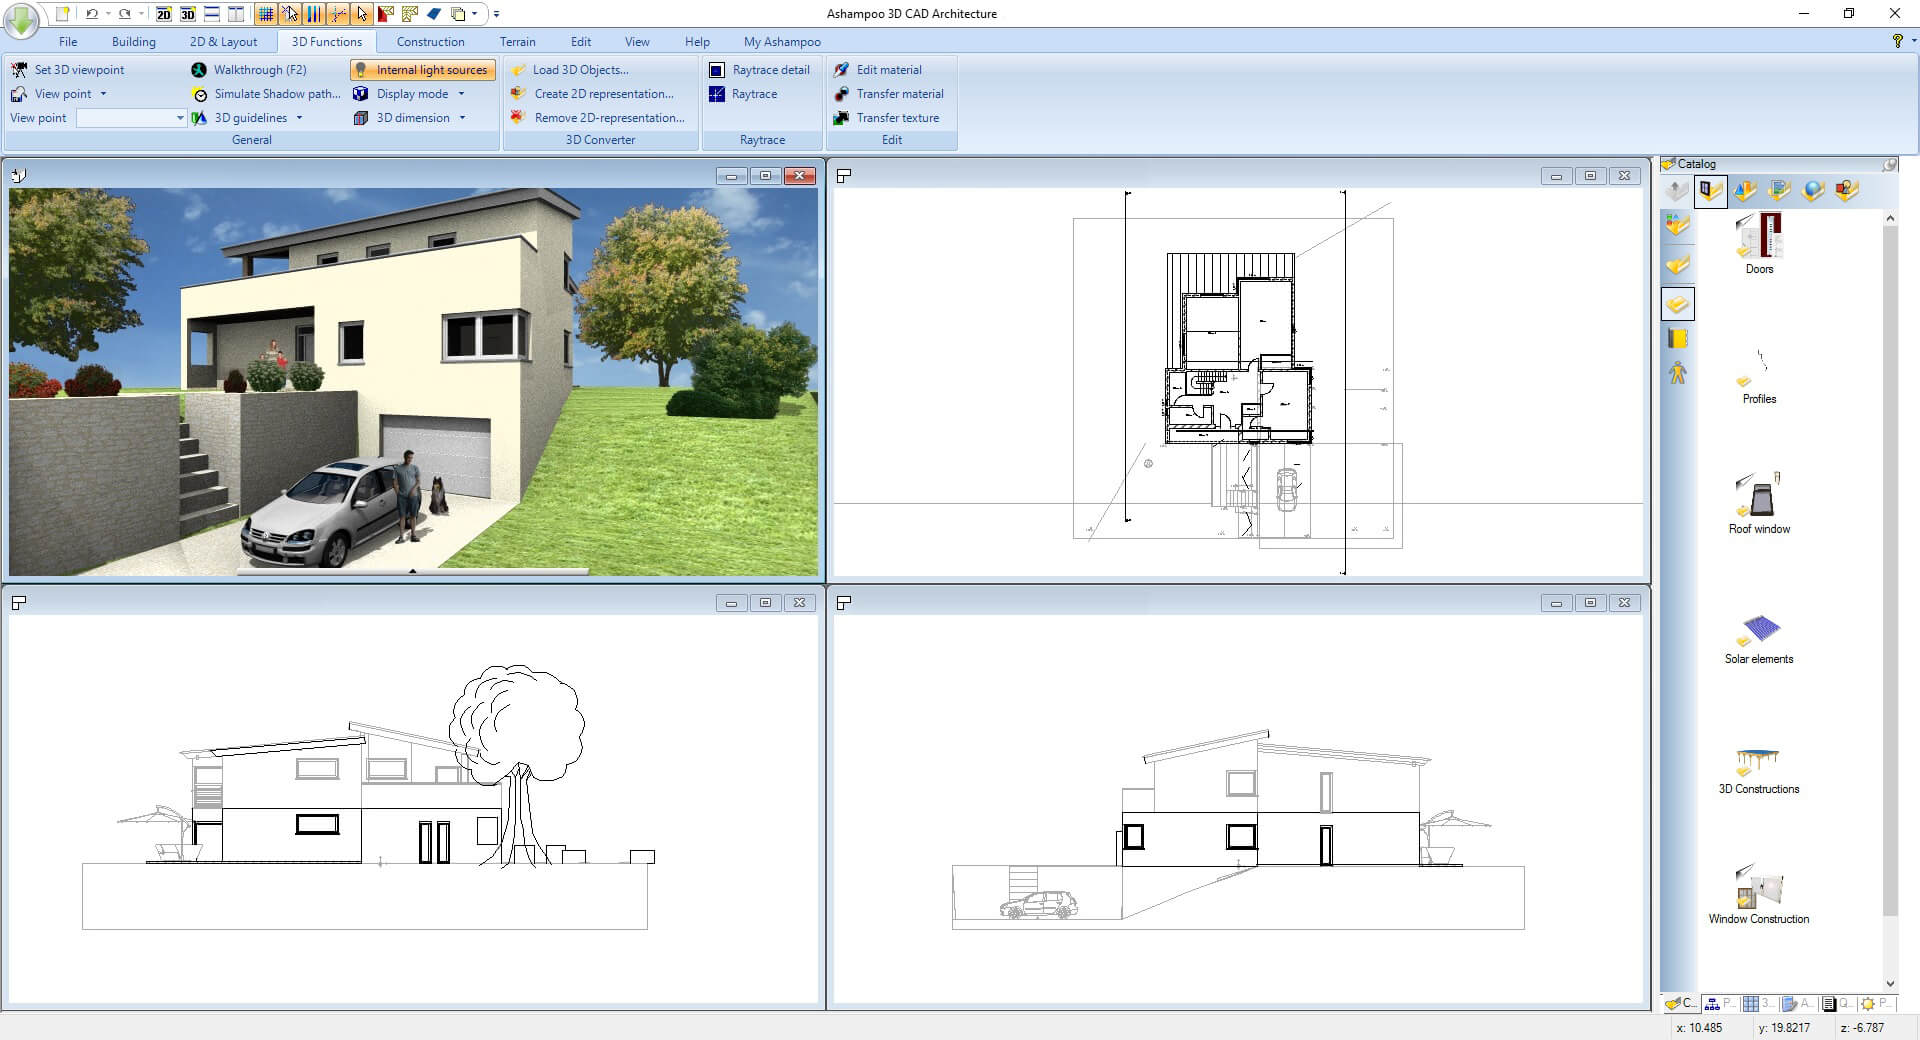 Ashampoo 3D CAD Architecture 7 screenshot